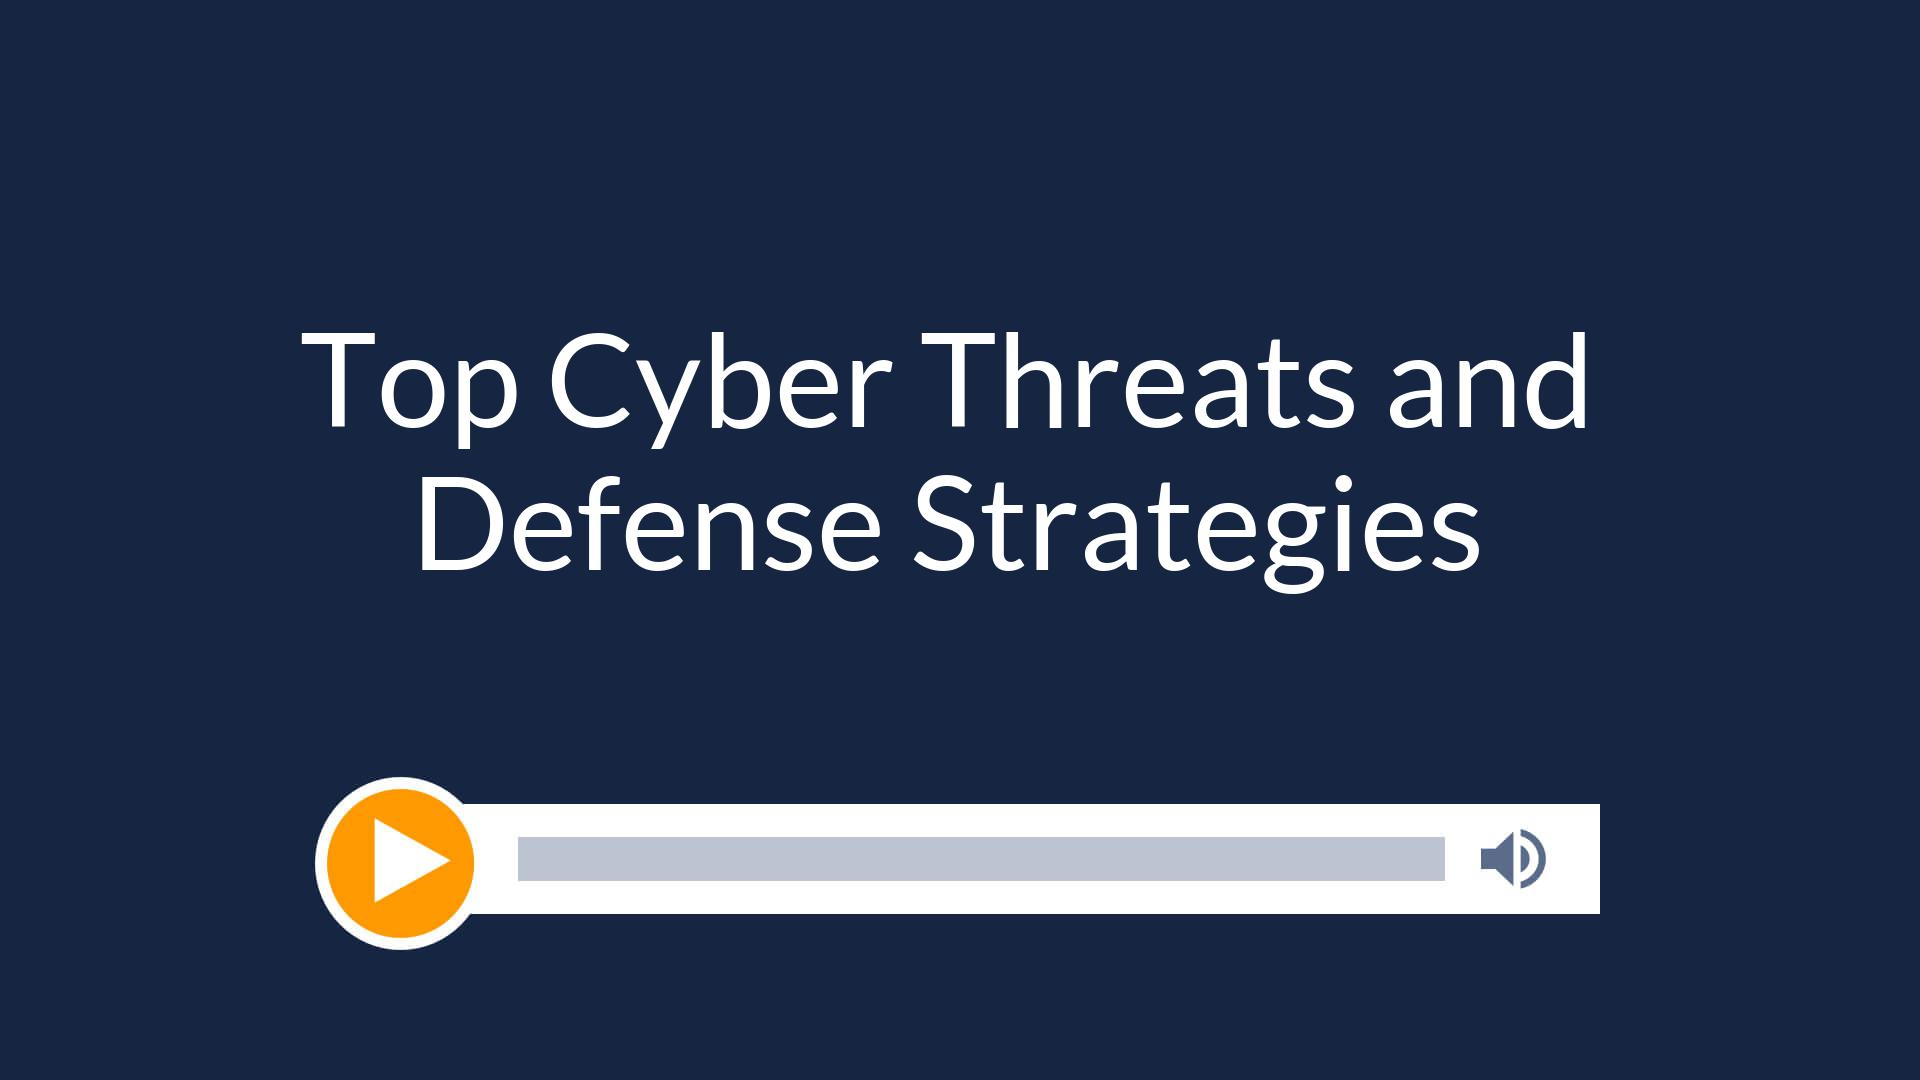 Top Cyber Threats and Defense Strategies